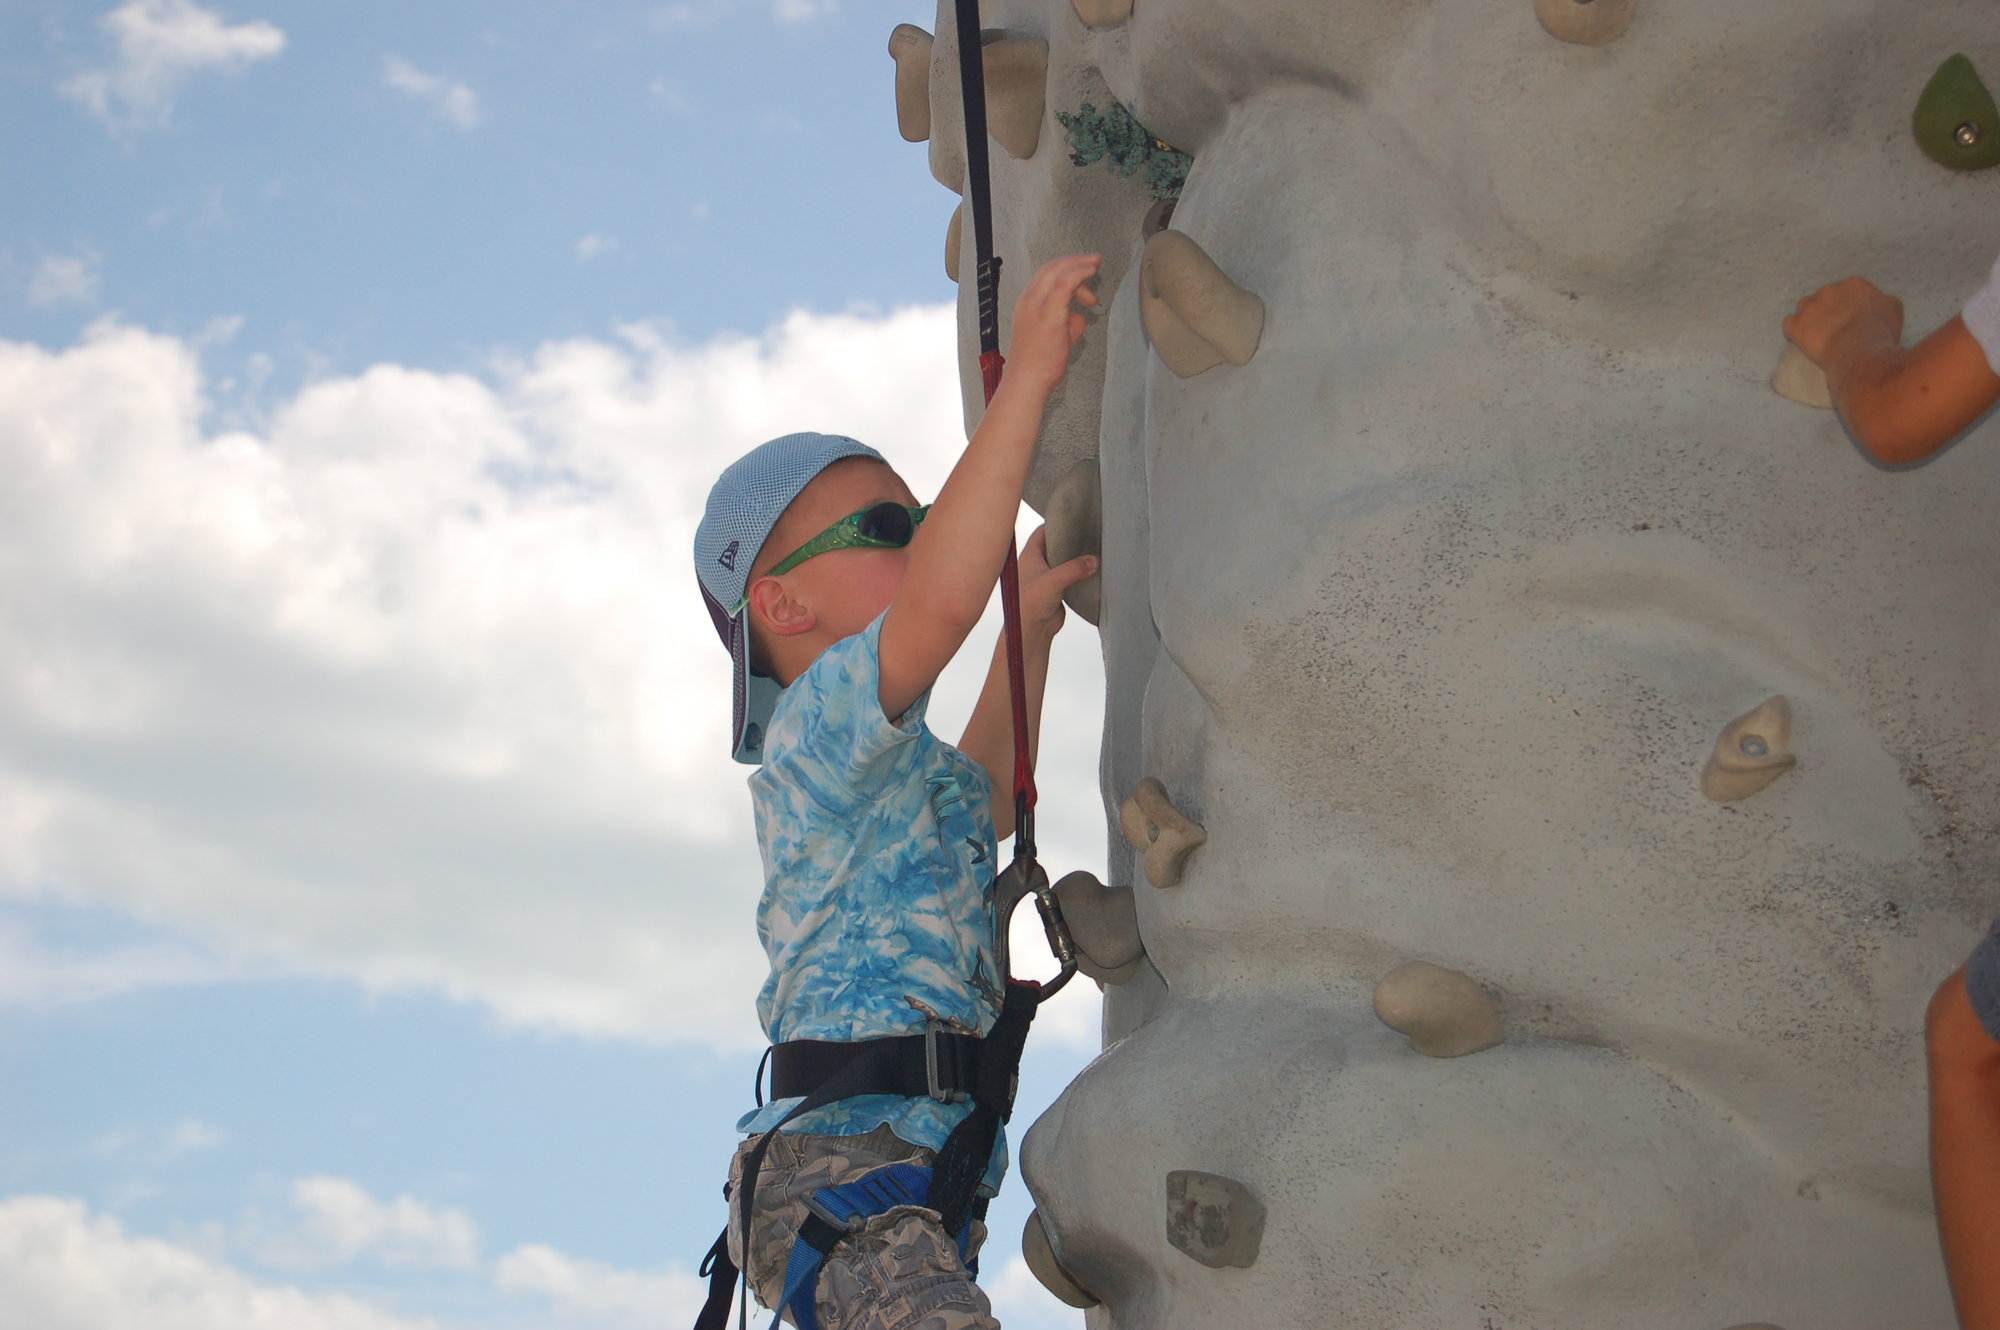 Boy ascends rock climbing wall